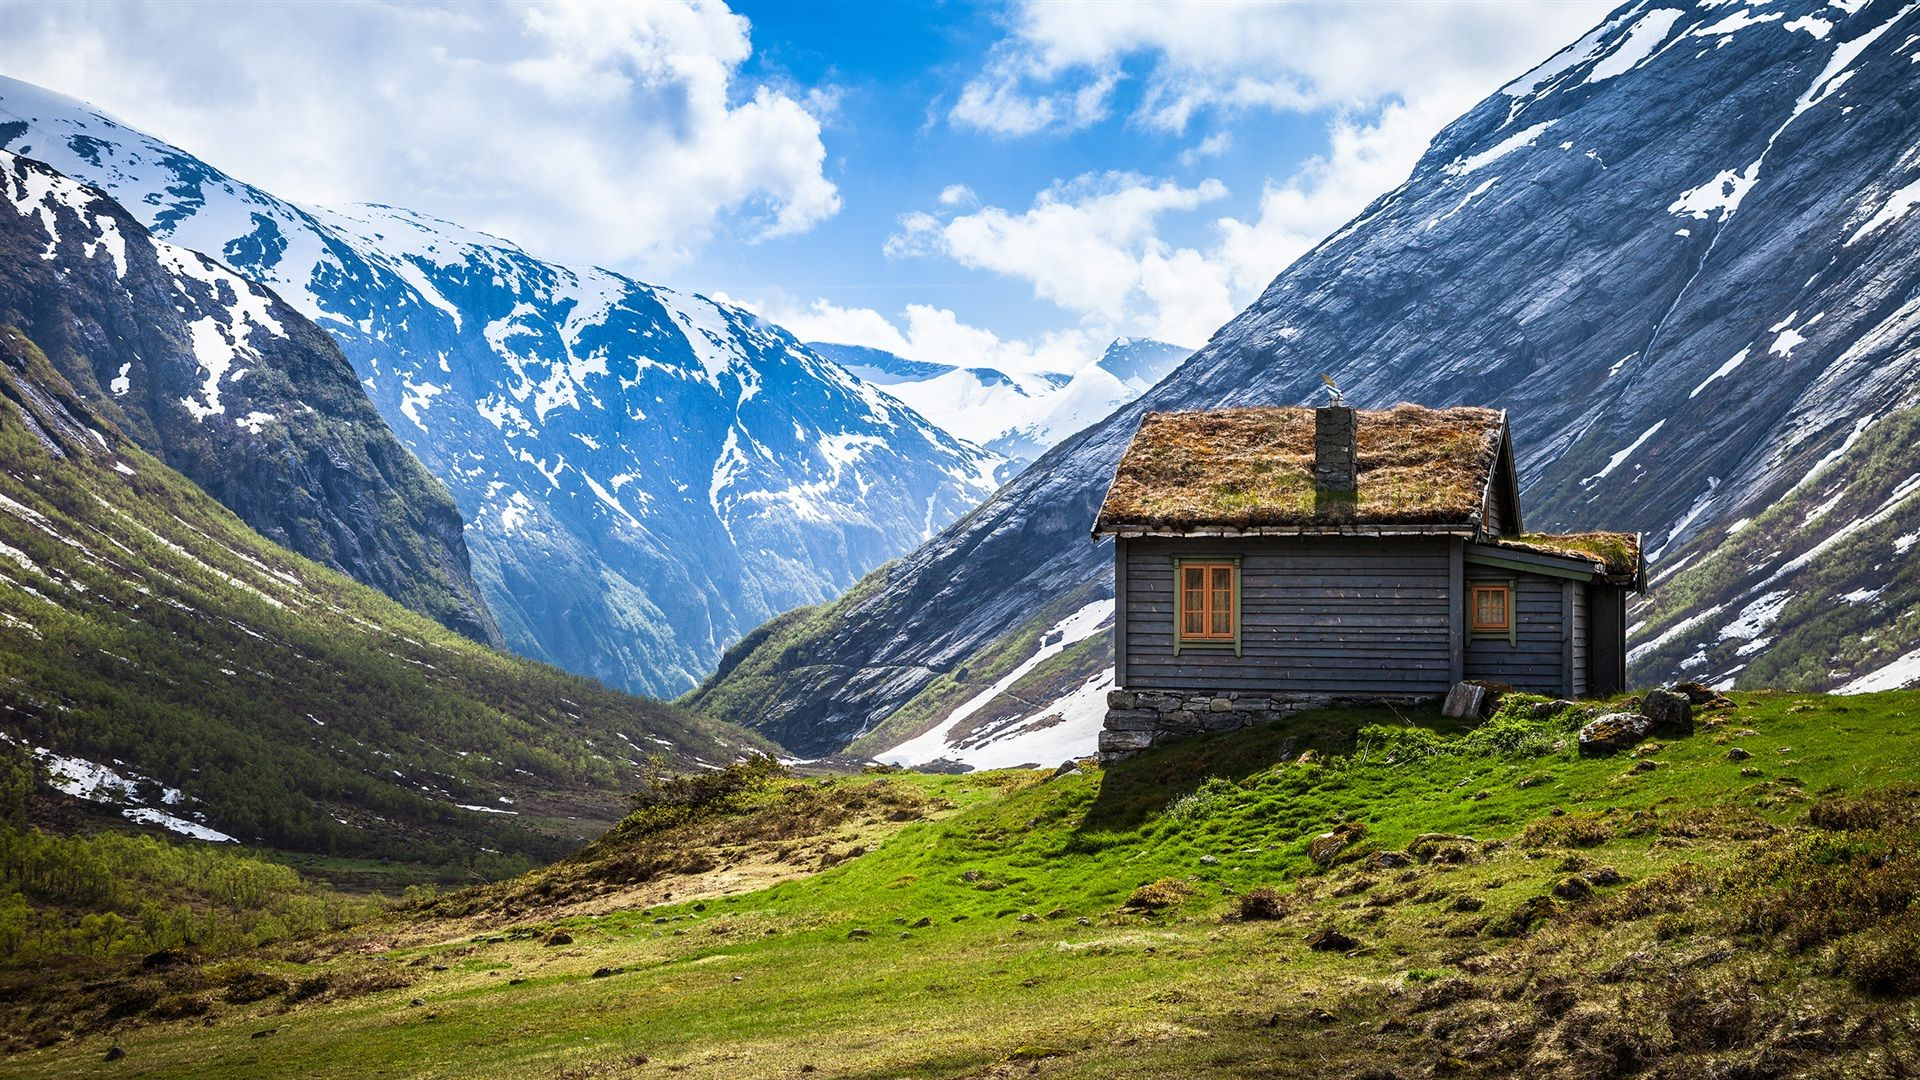 The Norway scenery, mountains and houses Wallpaper | 1920x1080 .